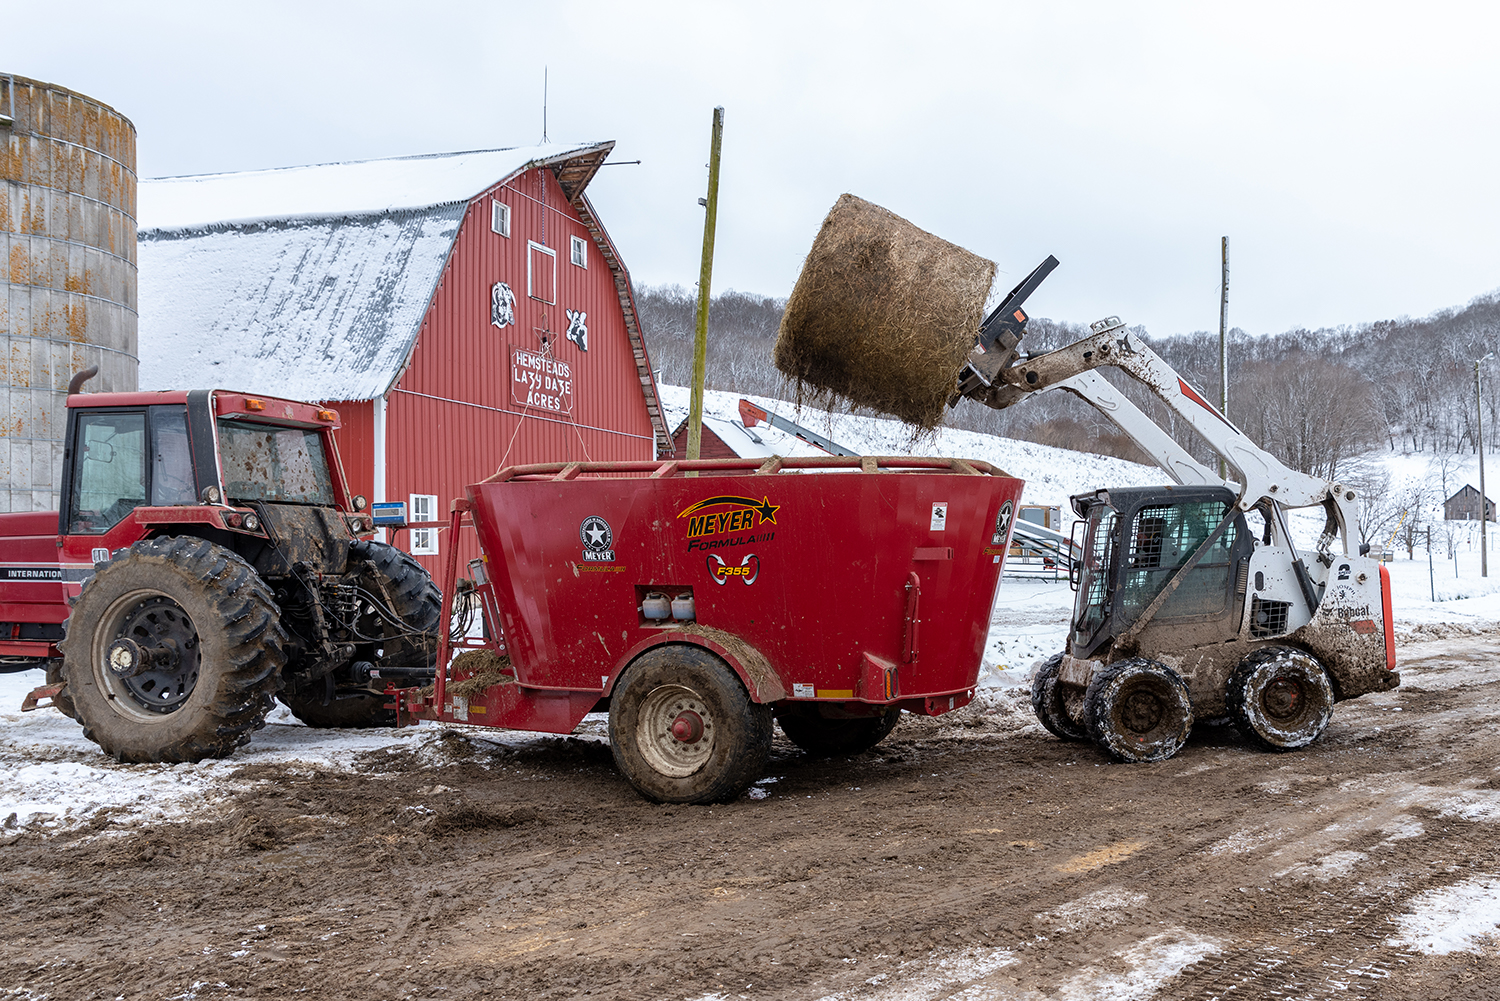 A farmer uses a Bobcat to load a round bale of hay into a trailer pulled by a big tractor.